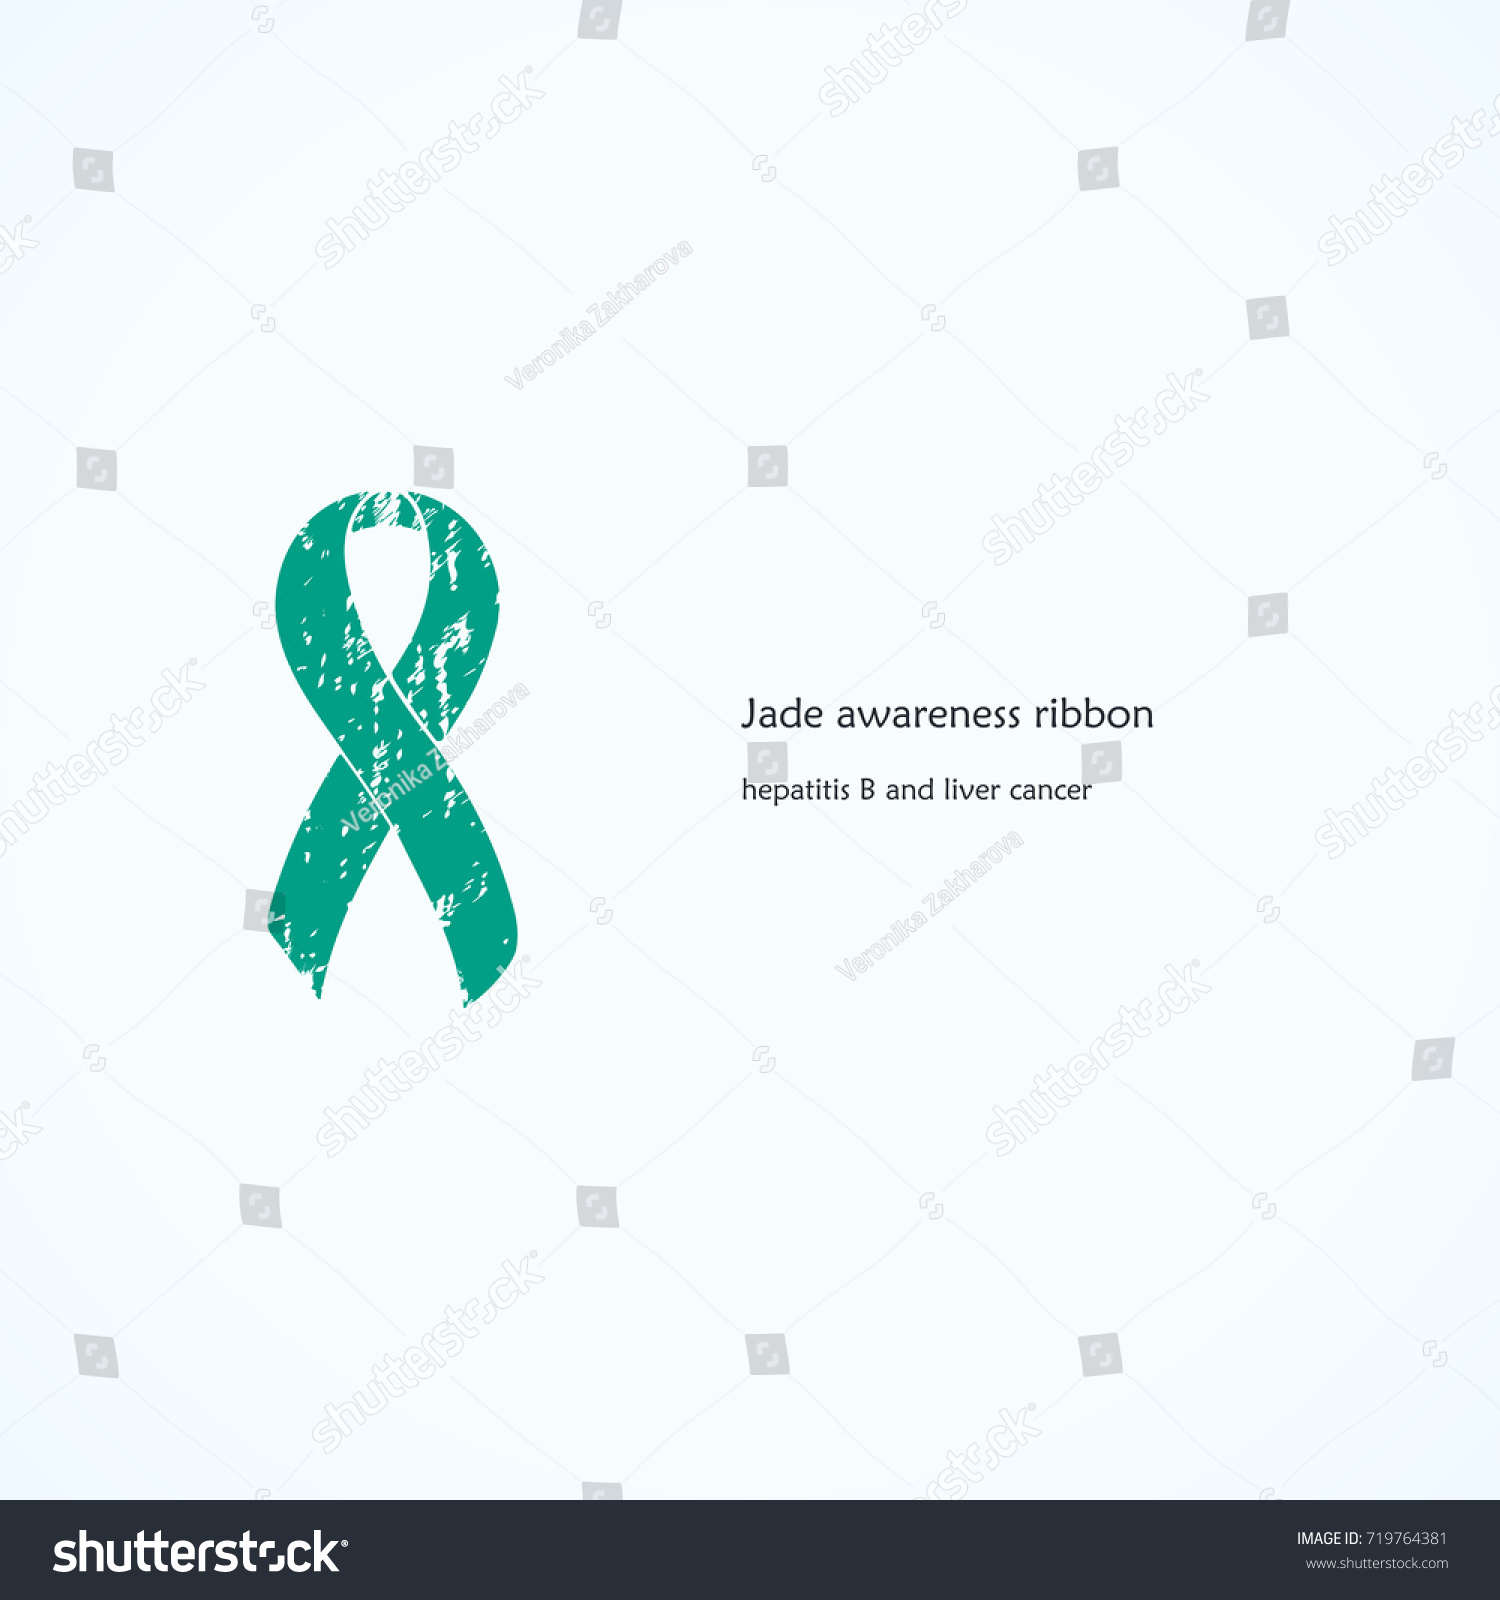 Awareness jade ribbon painted hepatitis b stock vector hd royalty awareness jade ribbon painted hepatitis b liver cancer isolated icon list ccuart Gallery